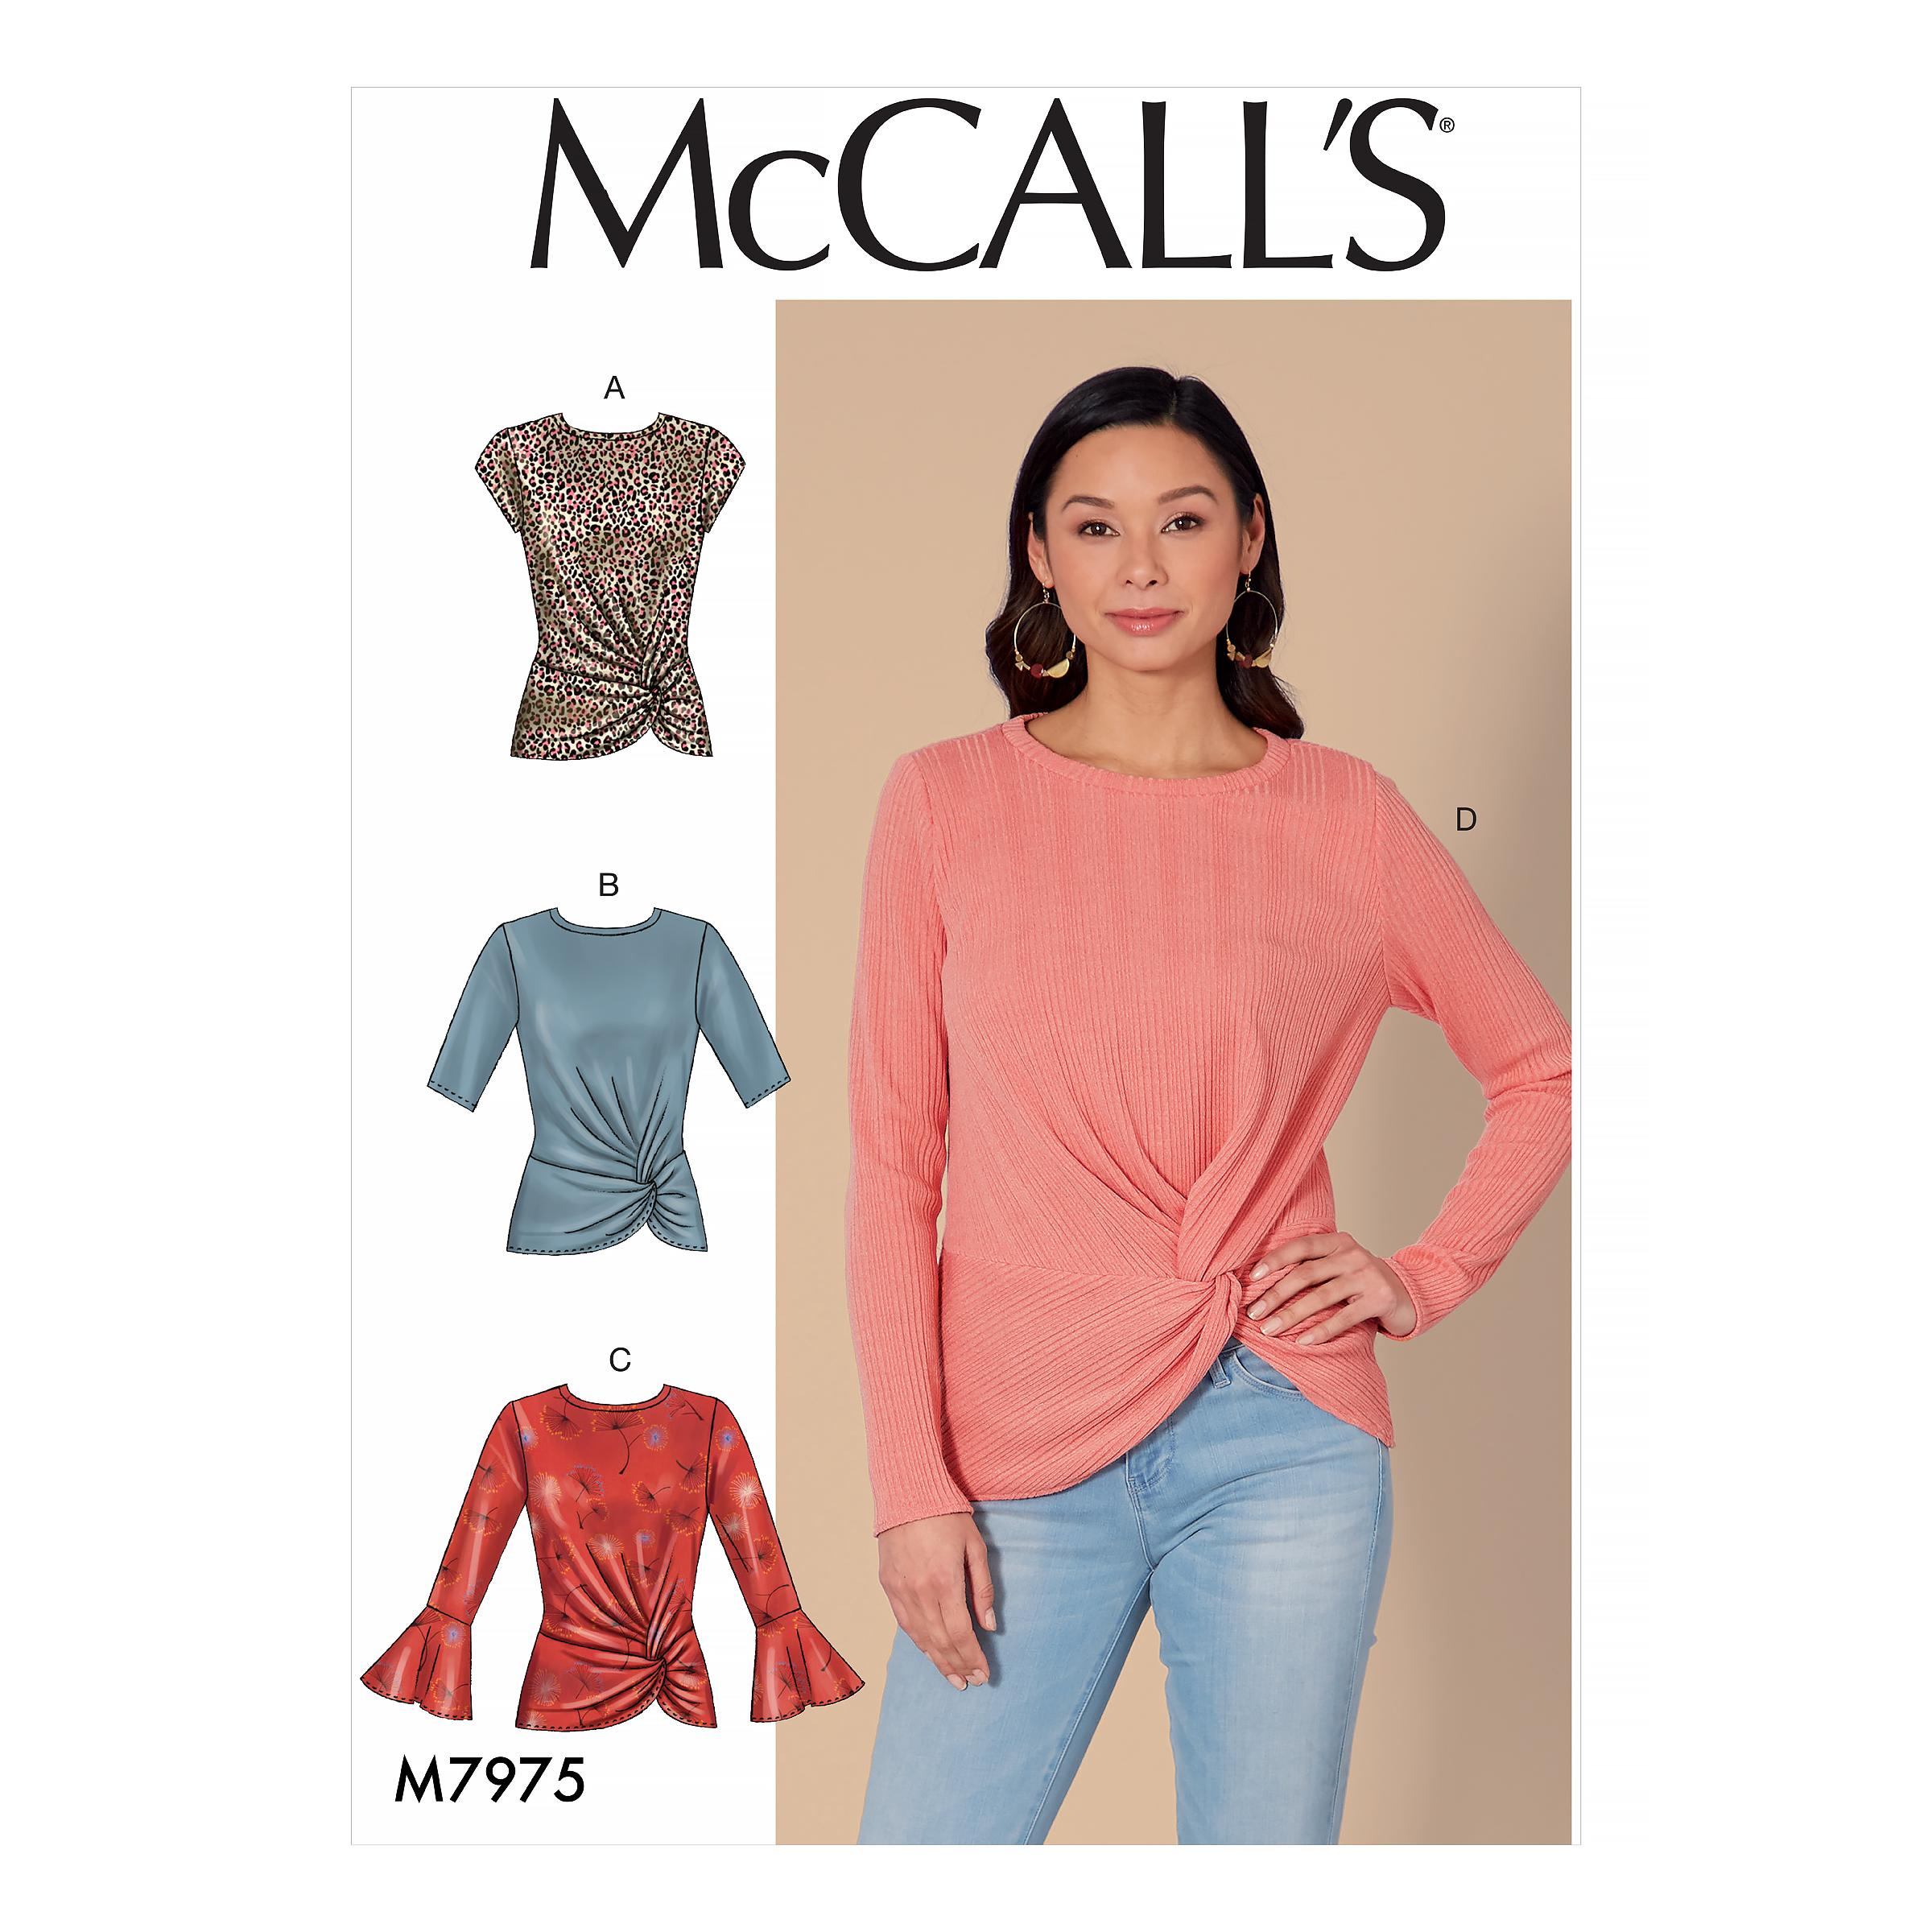 McCalls M7975 Misses Tops